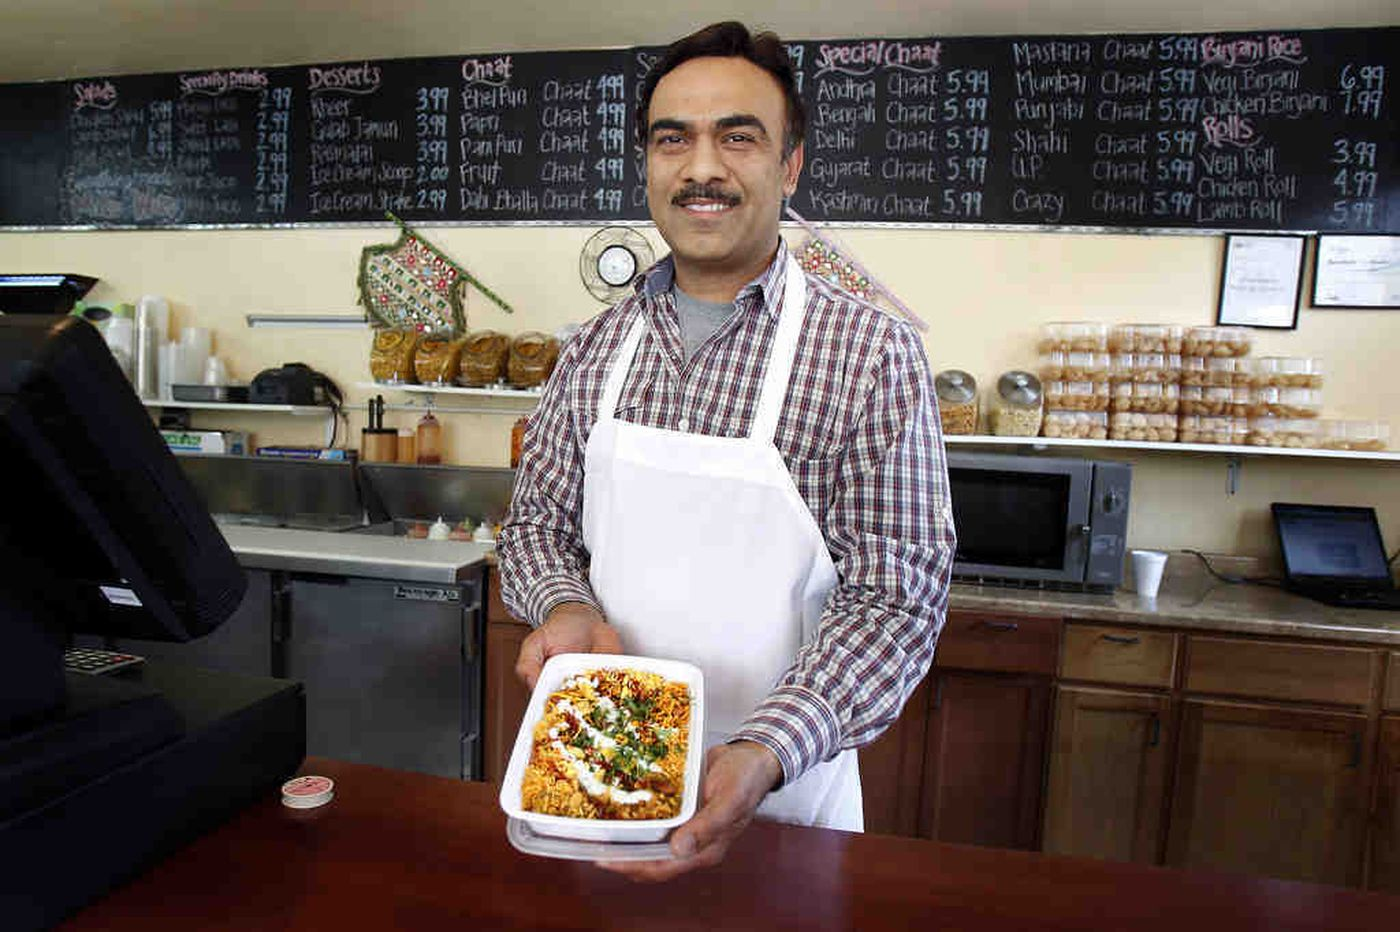 Philadelphia's Desi Chaat House in University City provides perfect mix of Indian and Pakistani cuisine